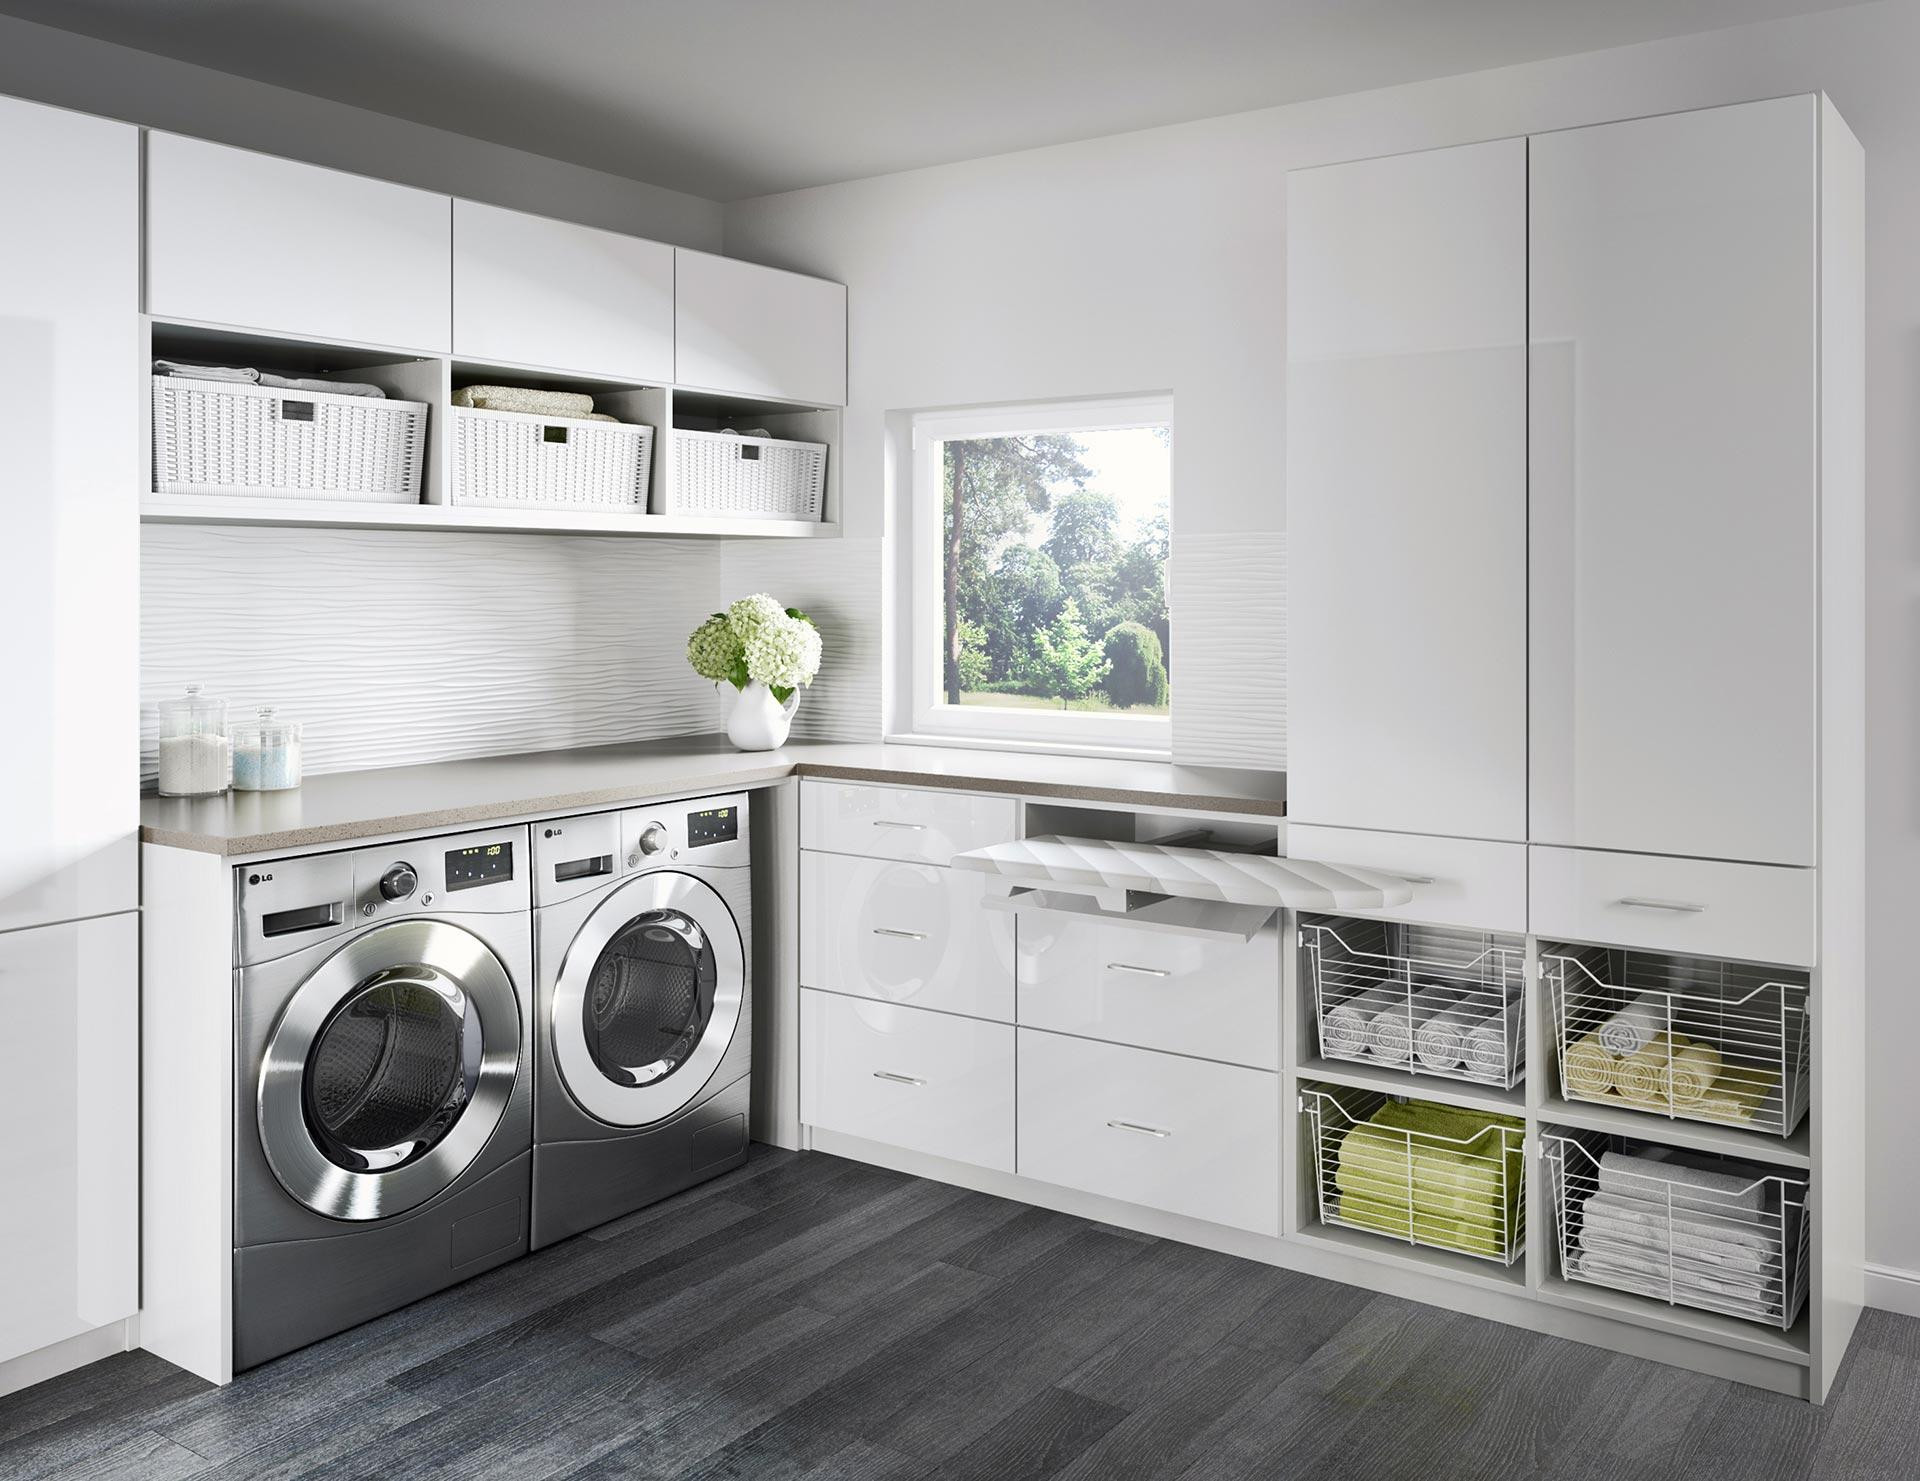 Best ideas about Laundry Room Cabinet Ideas . Save or Pin Laundry Room Cabinets & Storage Ideas by California Closets Now.